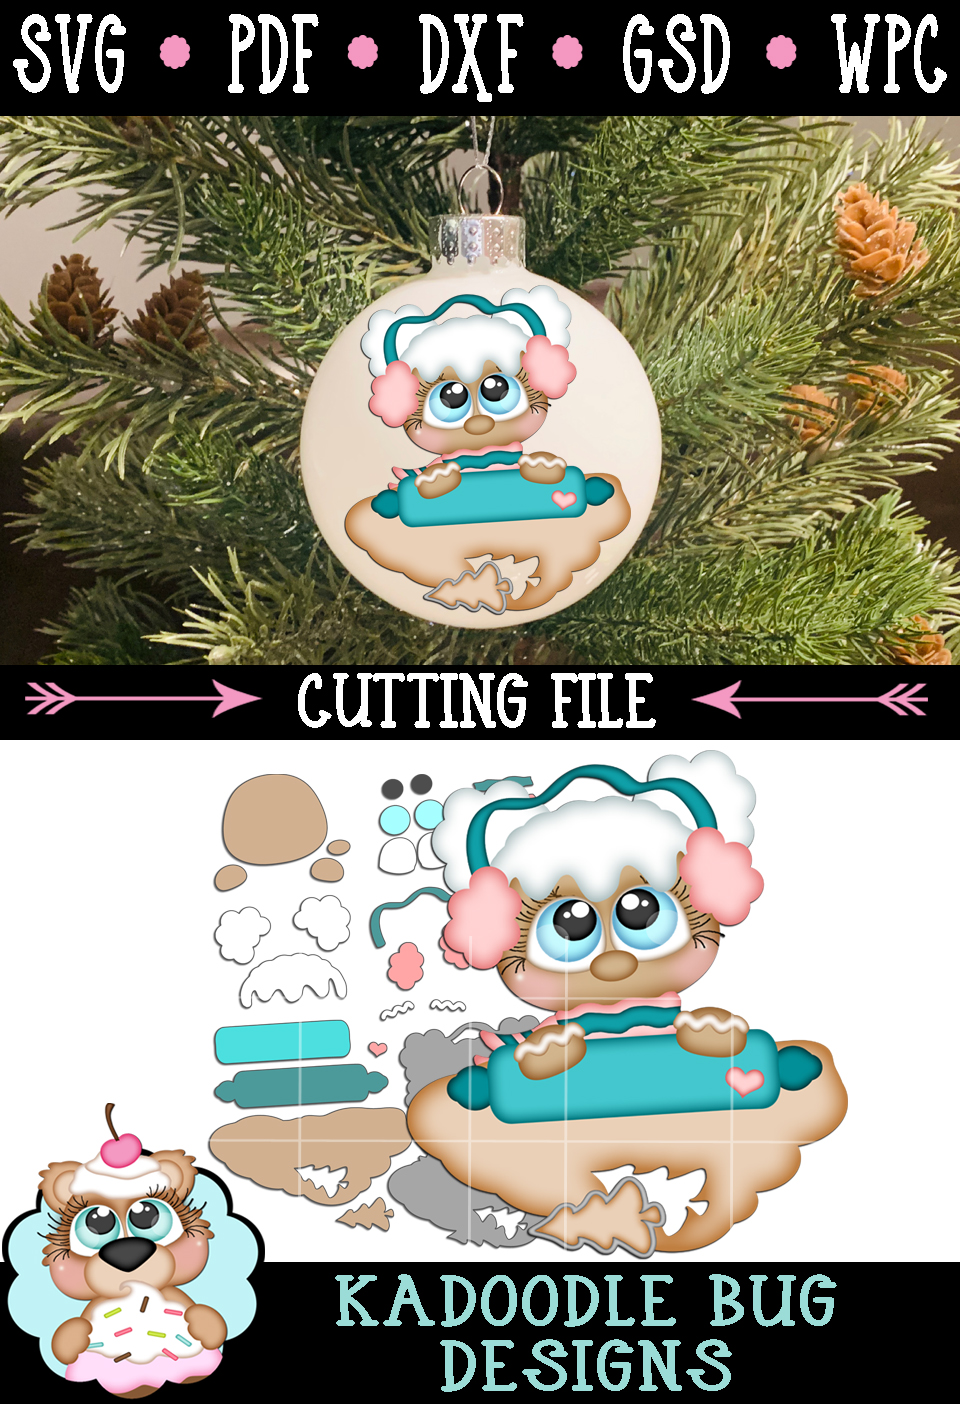 Cookie Dough Ginger Girl Cut File - SVG PDF DXF GSD WPC example image 2